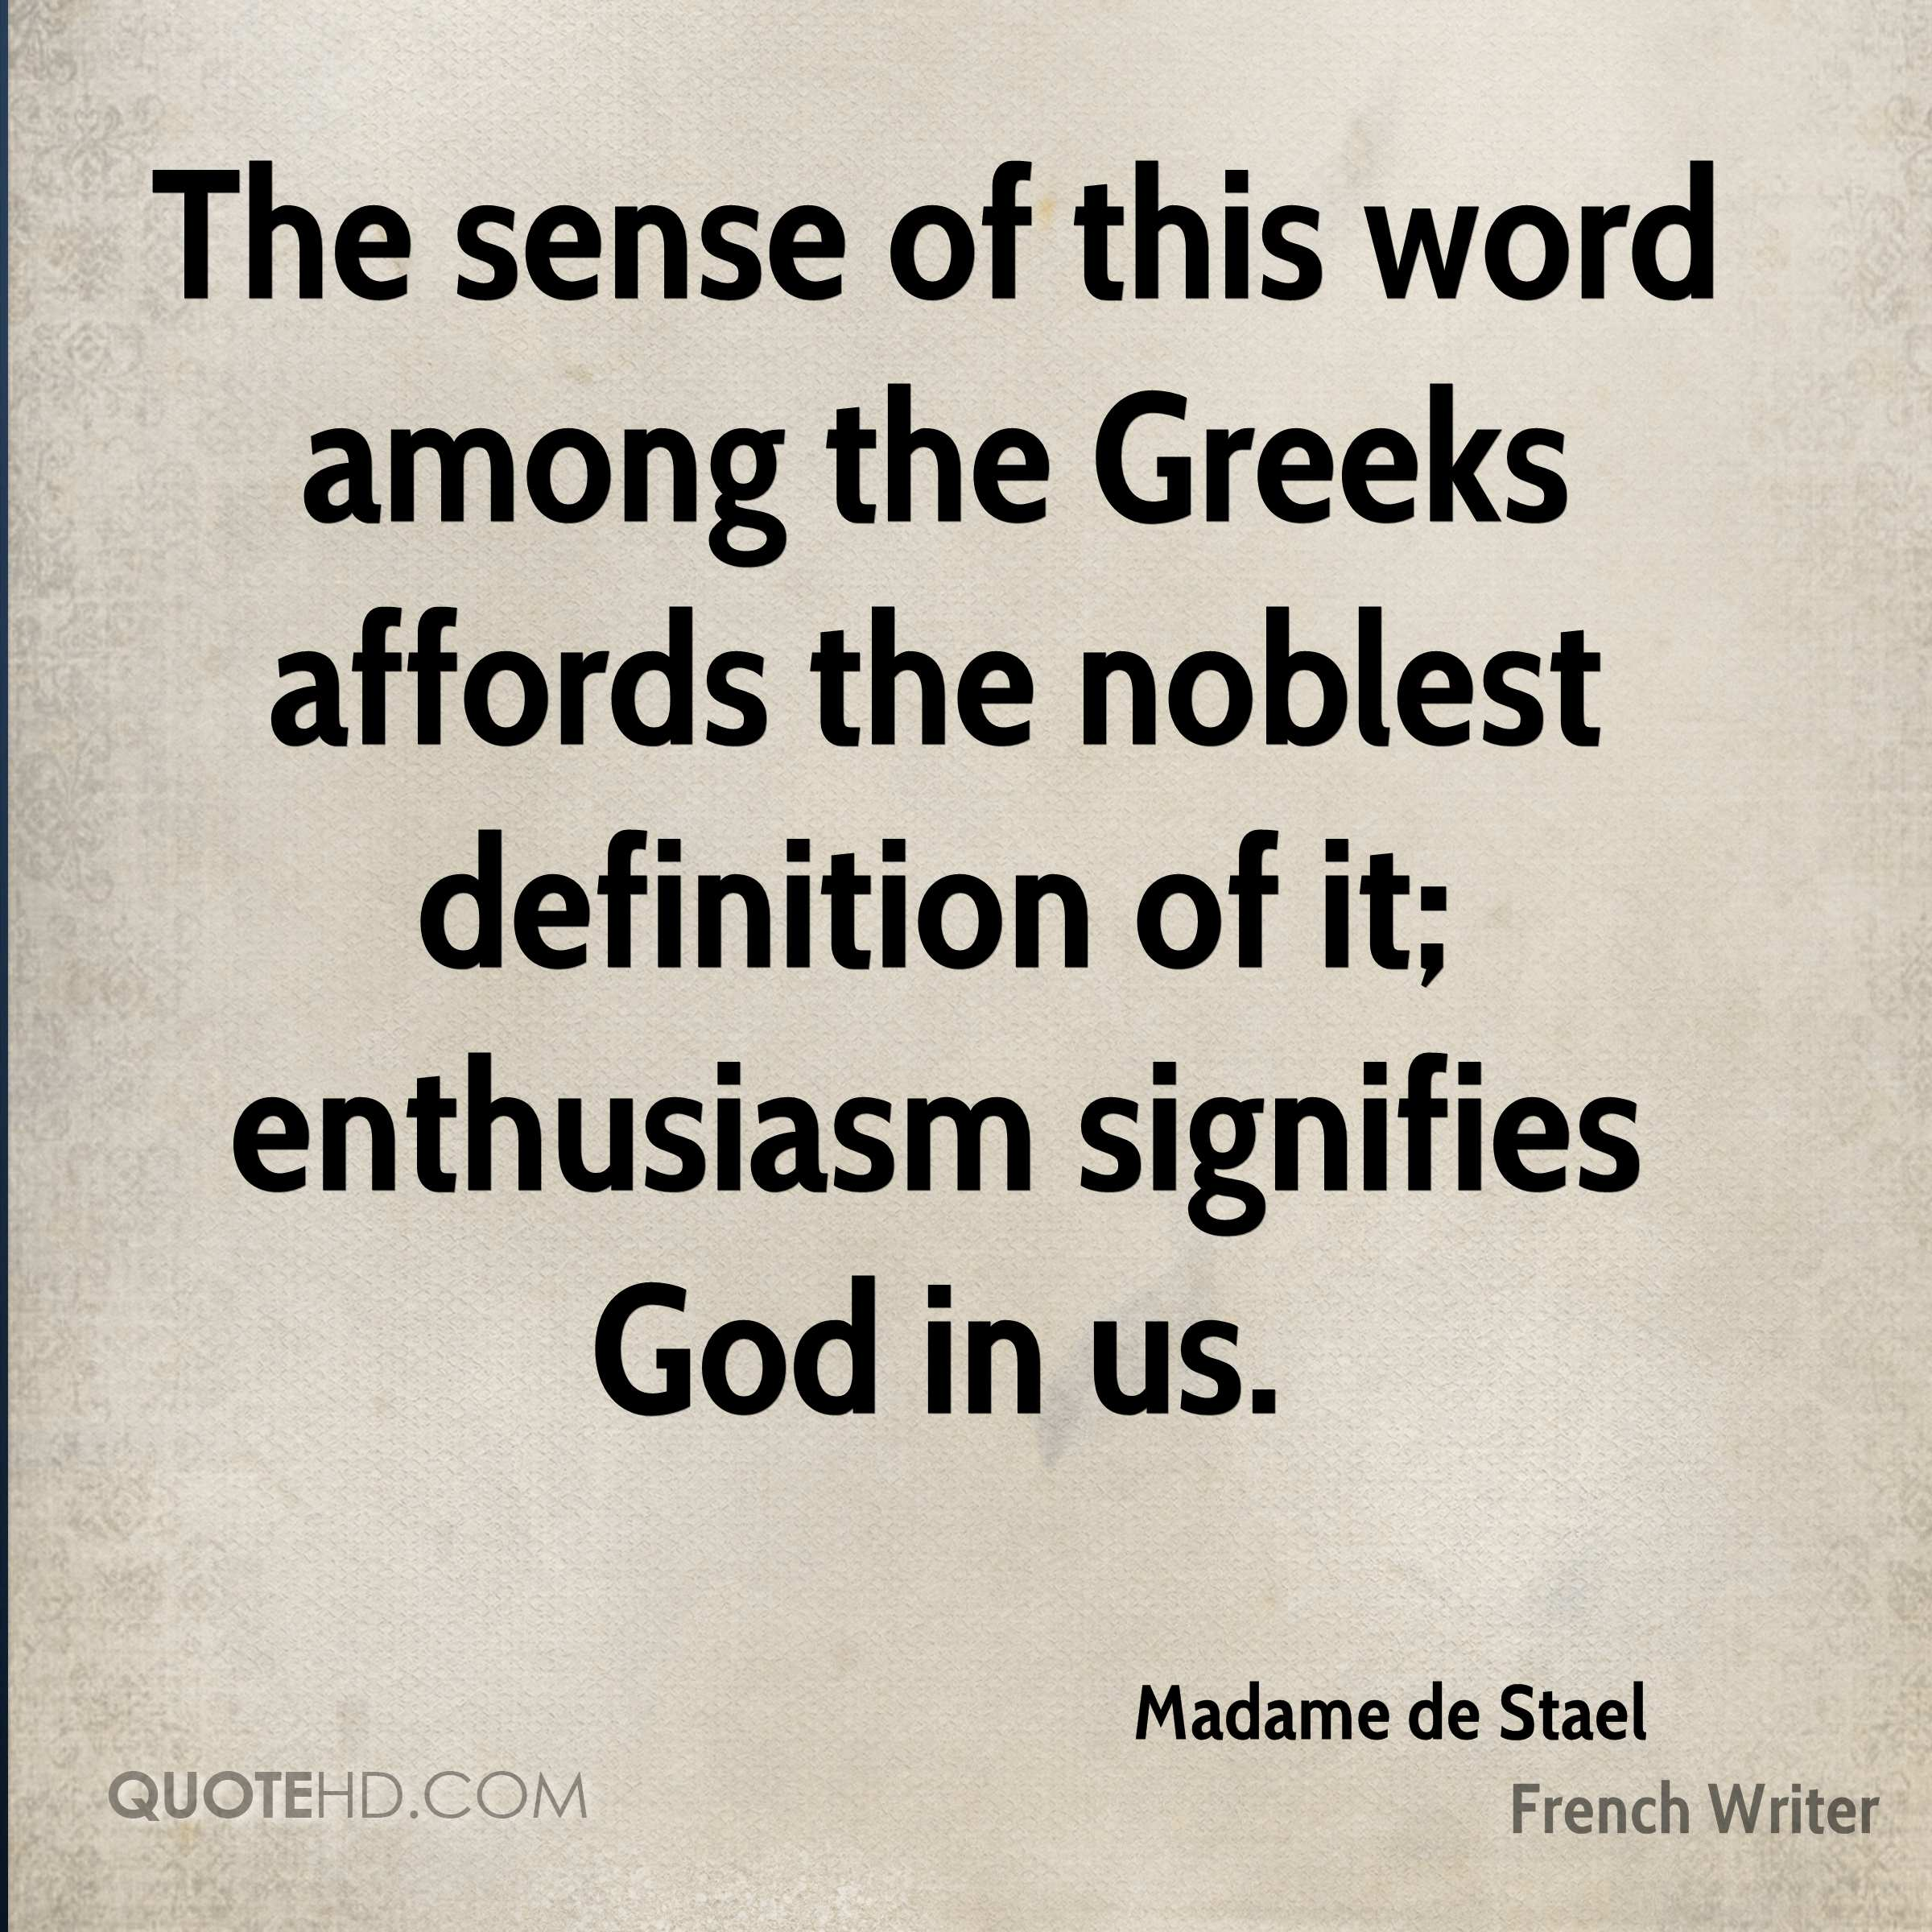 The sense of this word among the Greeks affords the noblest definition of it; enthusiasm signifies God in us.